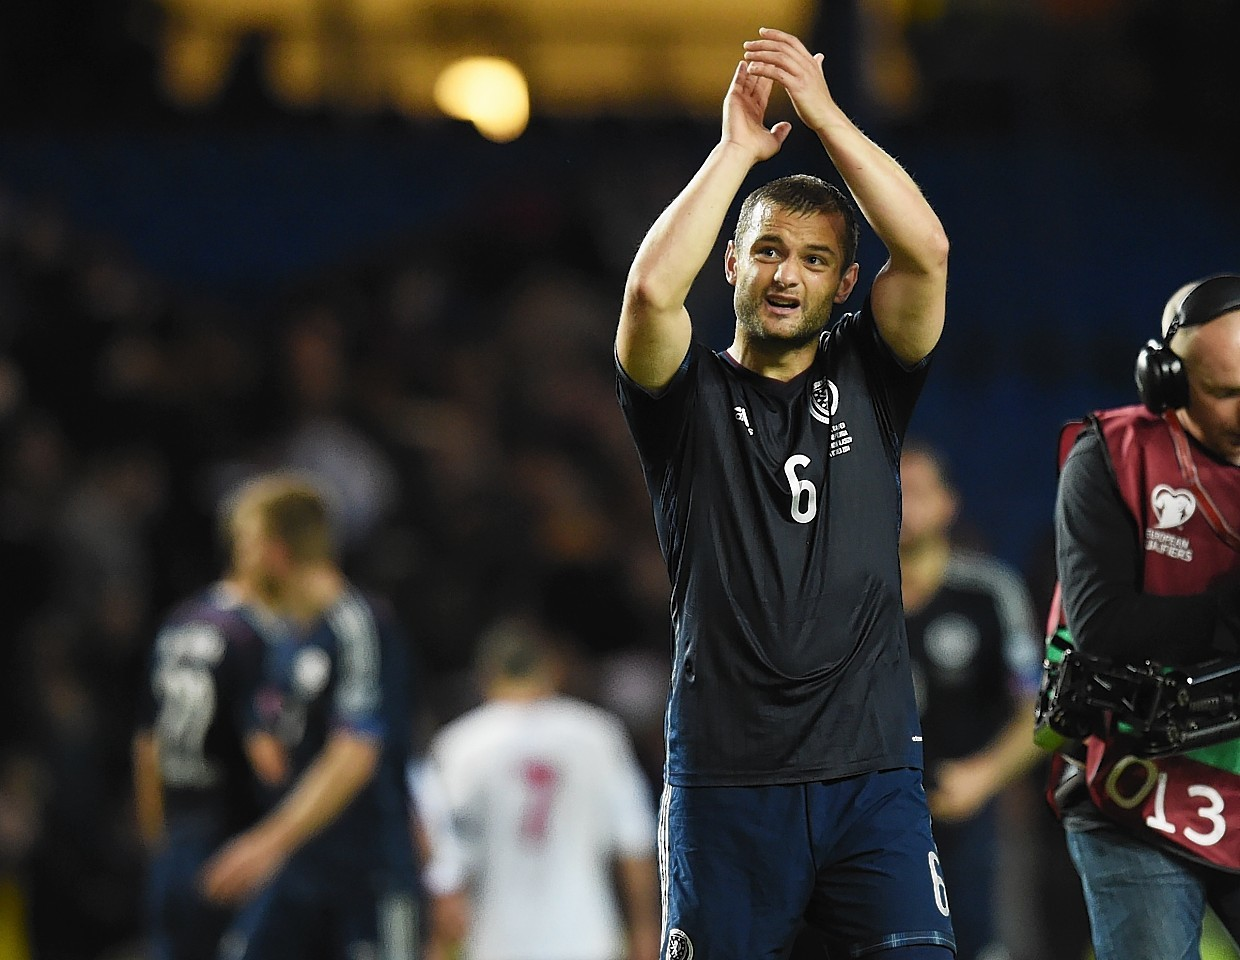 Scotland star Shaun Maloney has joined Hull City